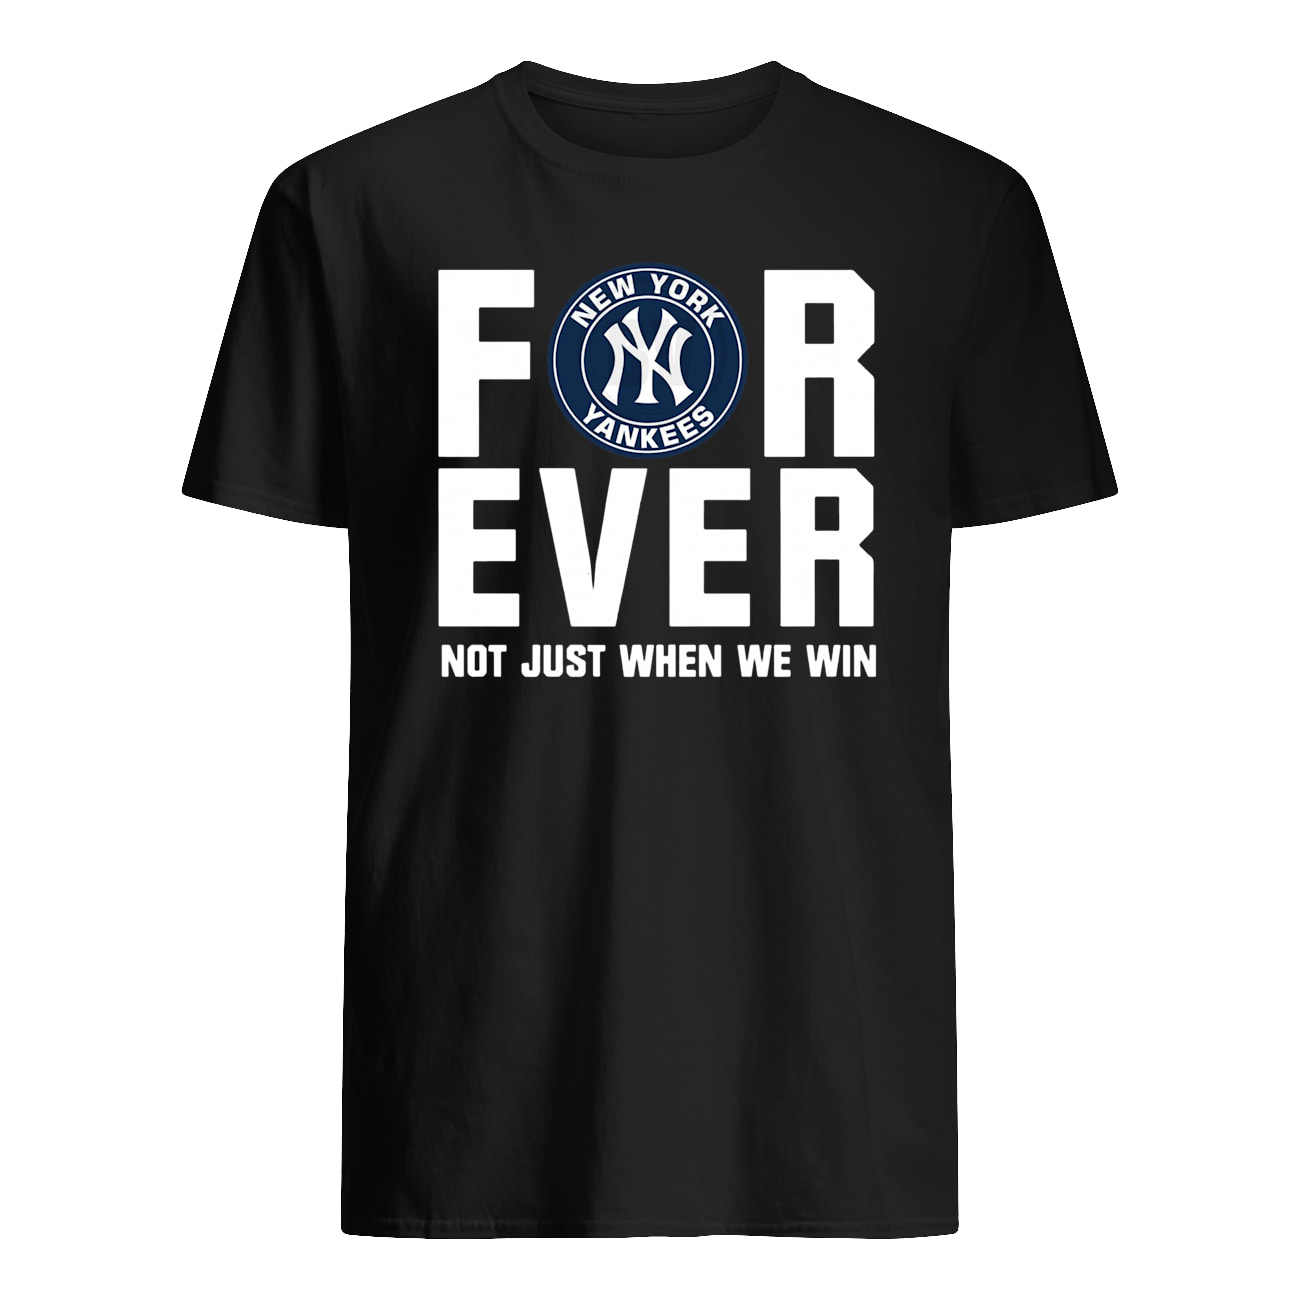 New york yankees forever not just when we win mens shirt